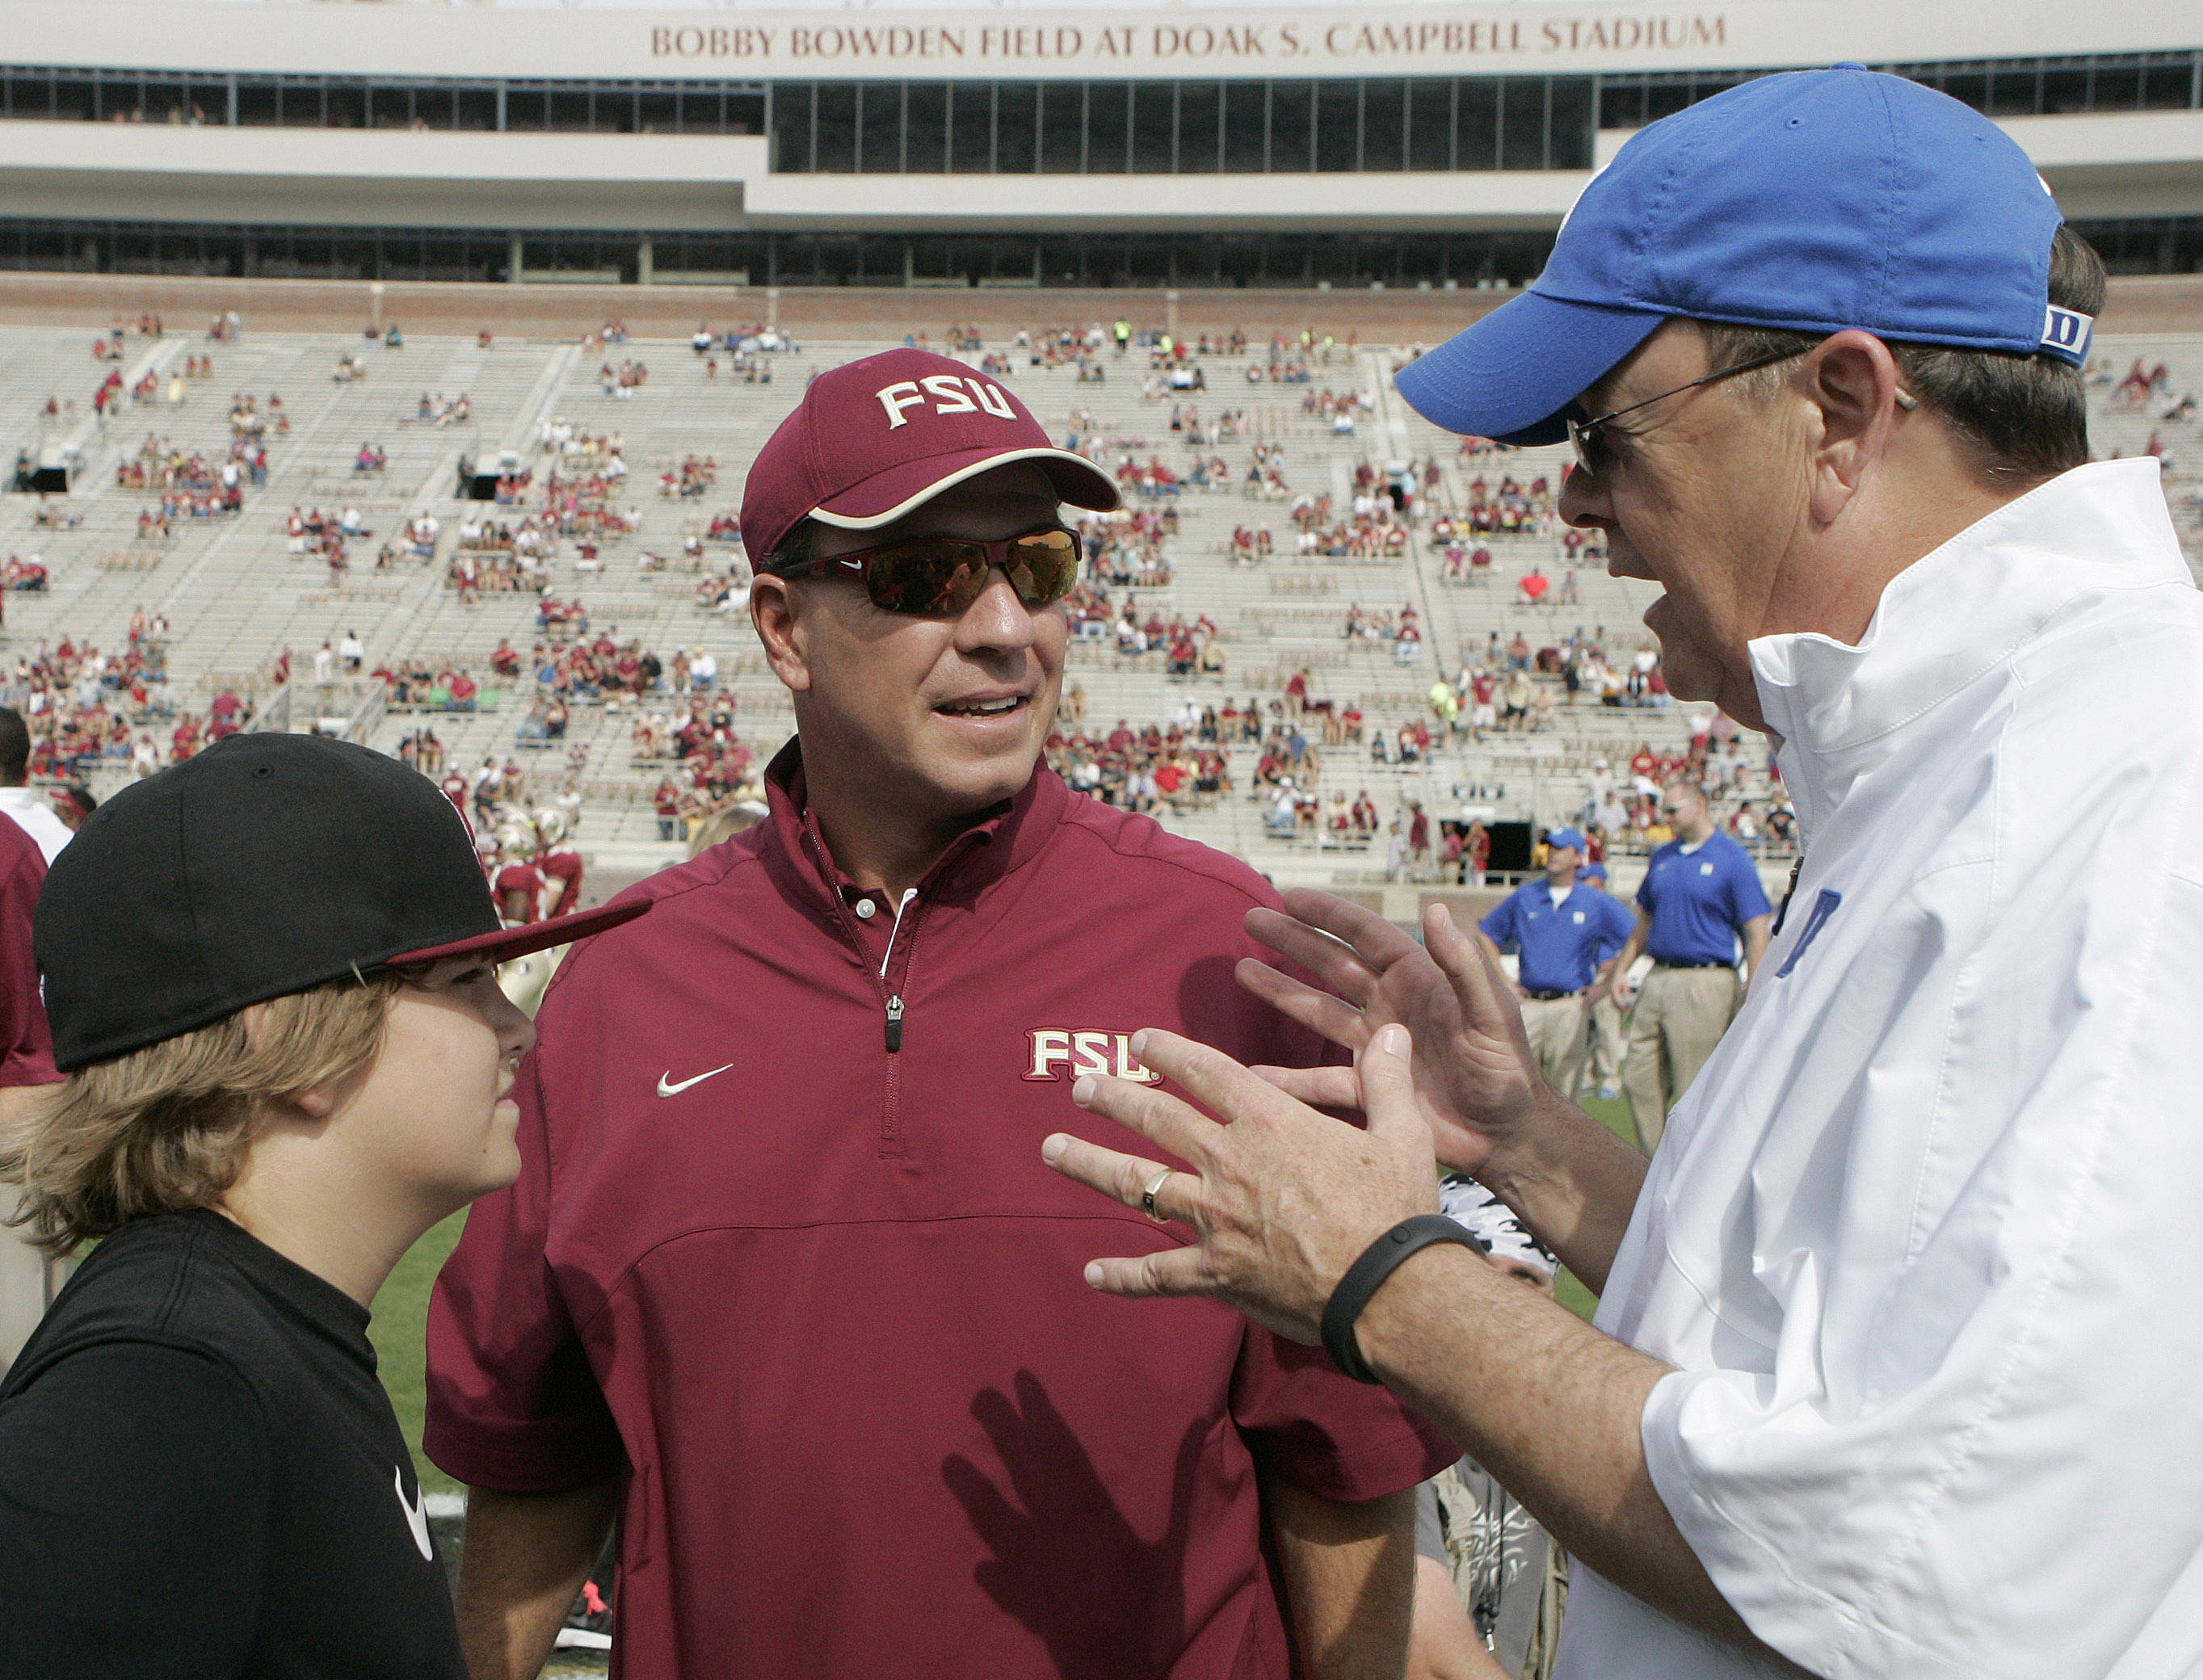 Duke head coach, David Cutcliffe, right, talks with Florida State head coach Jimbo Fisher and his son Trey Fisher before the start of the game. (AP Photo/Steve Cannon)